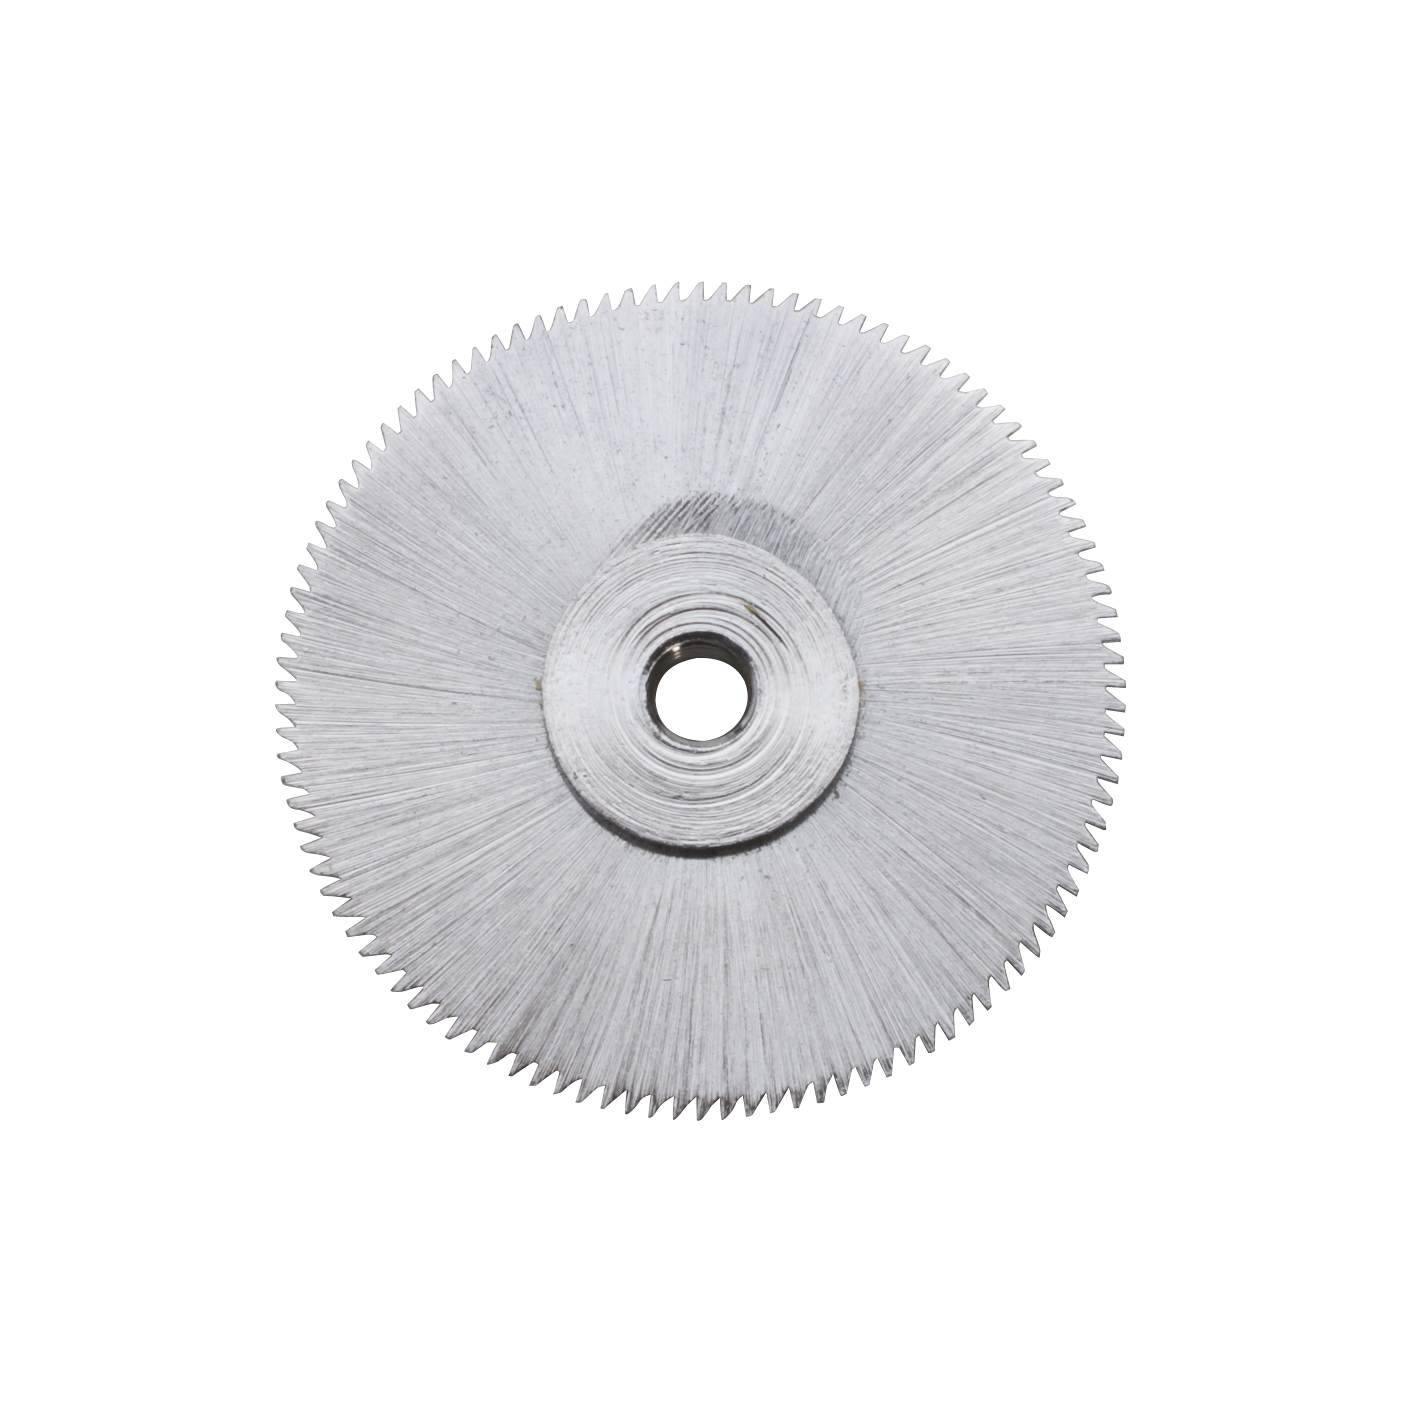 REPLACEMENT BLADE FOR PLR-815.00